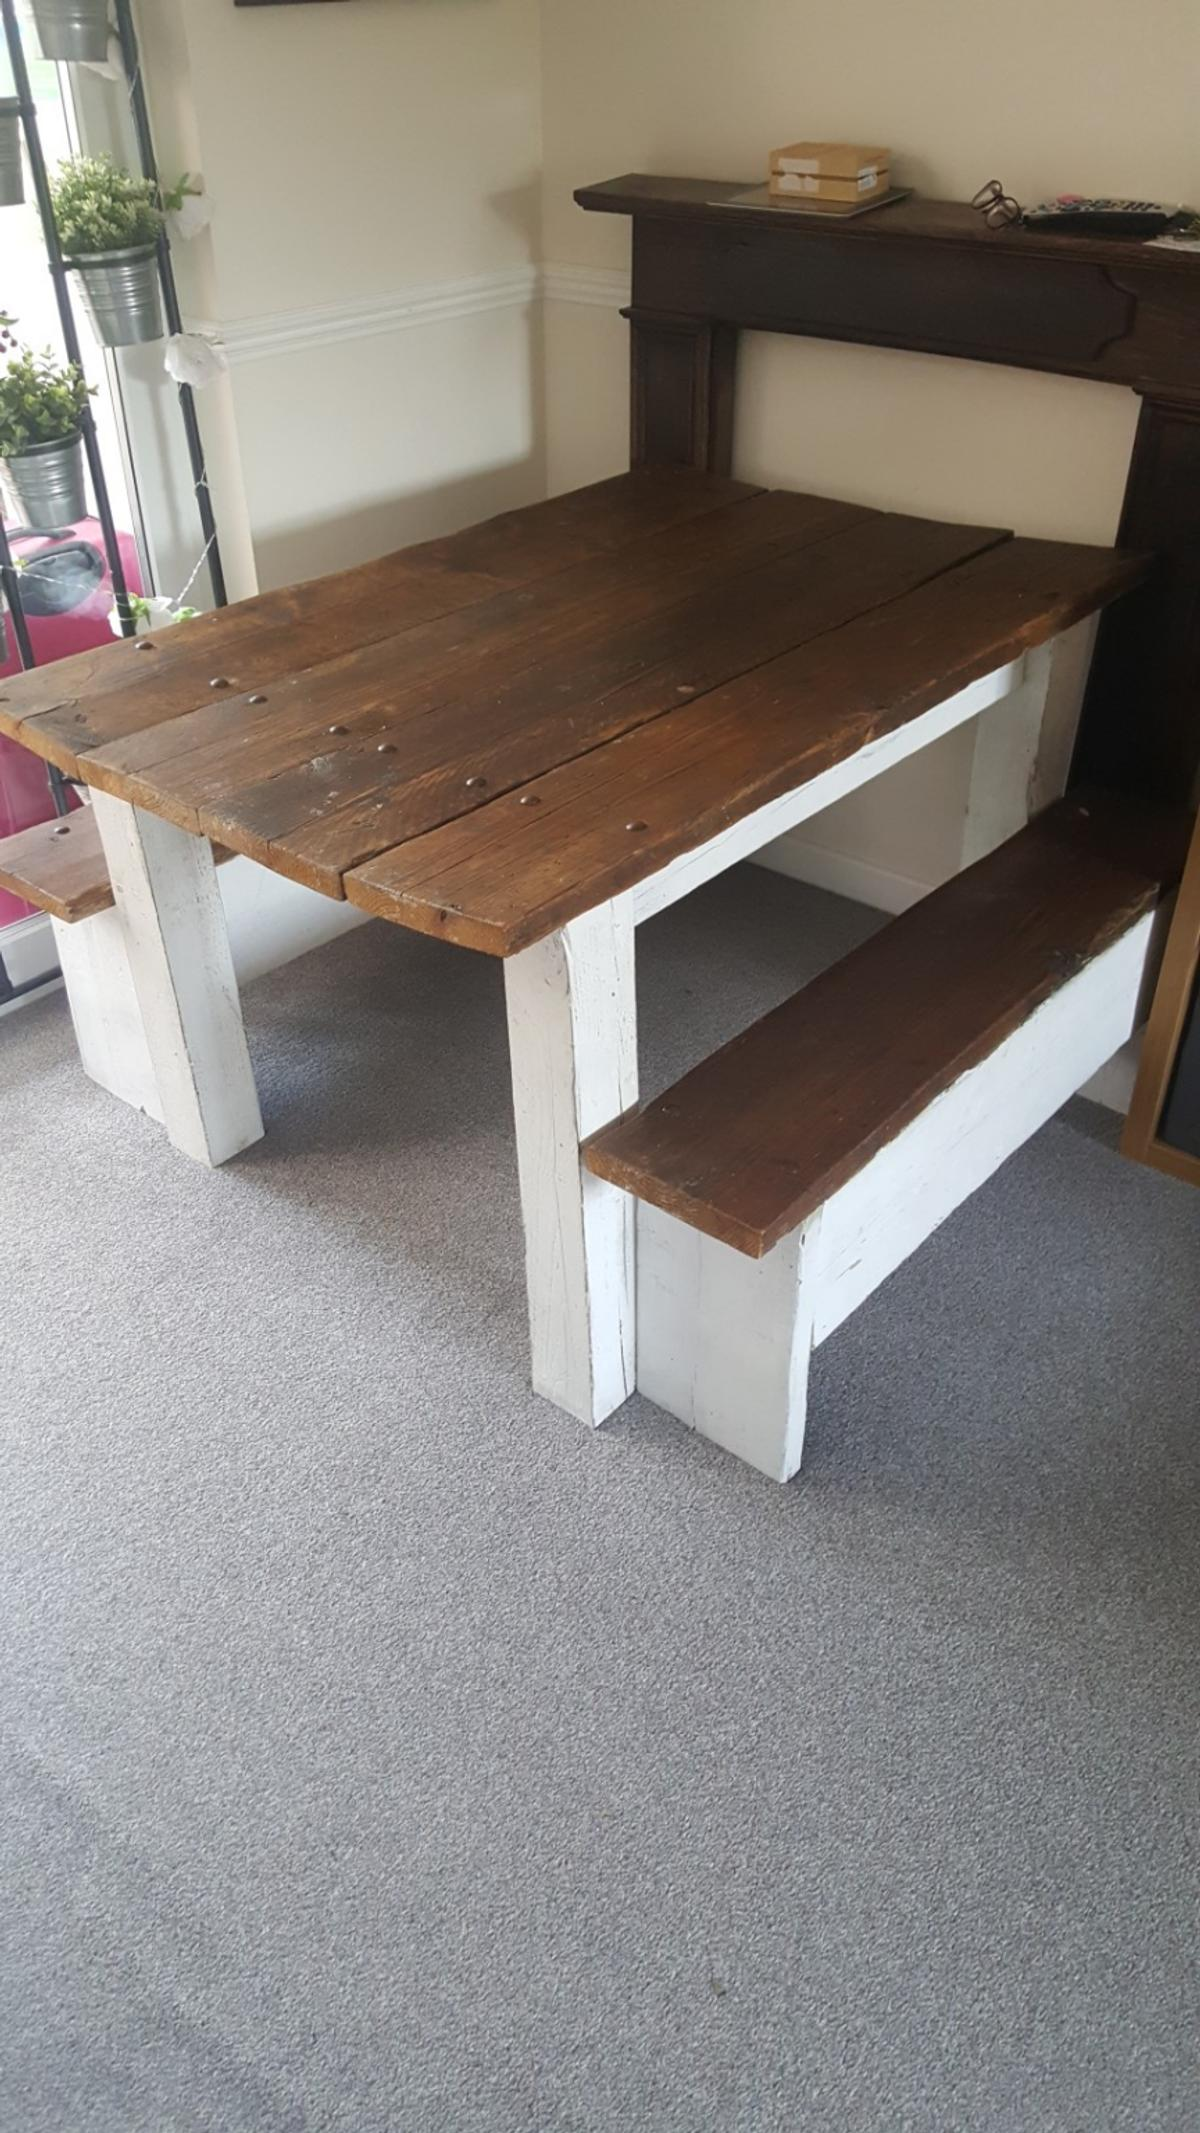 handmade wooden table with benches in